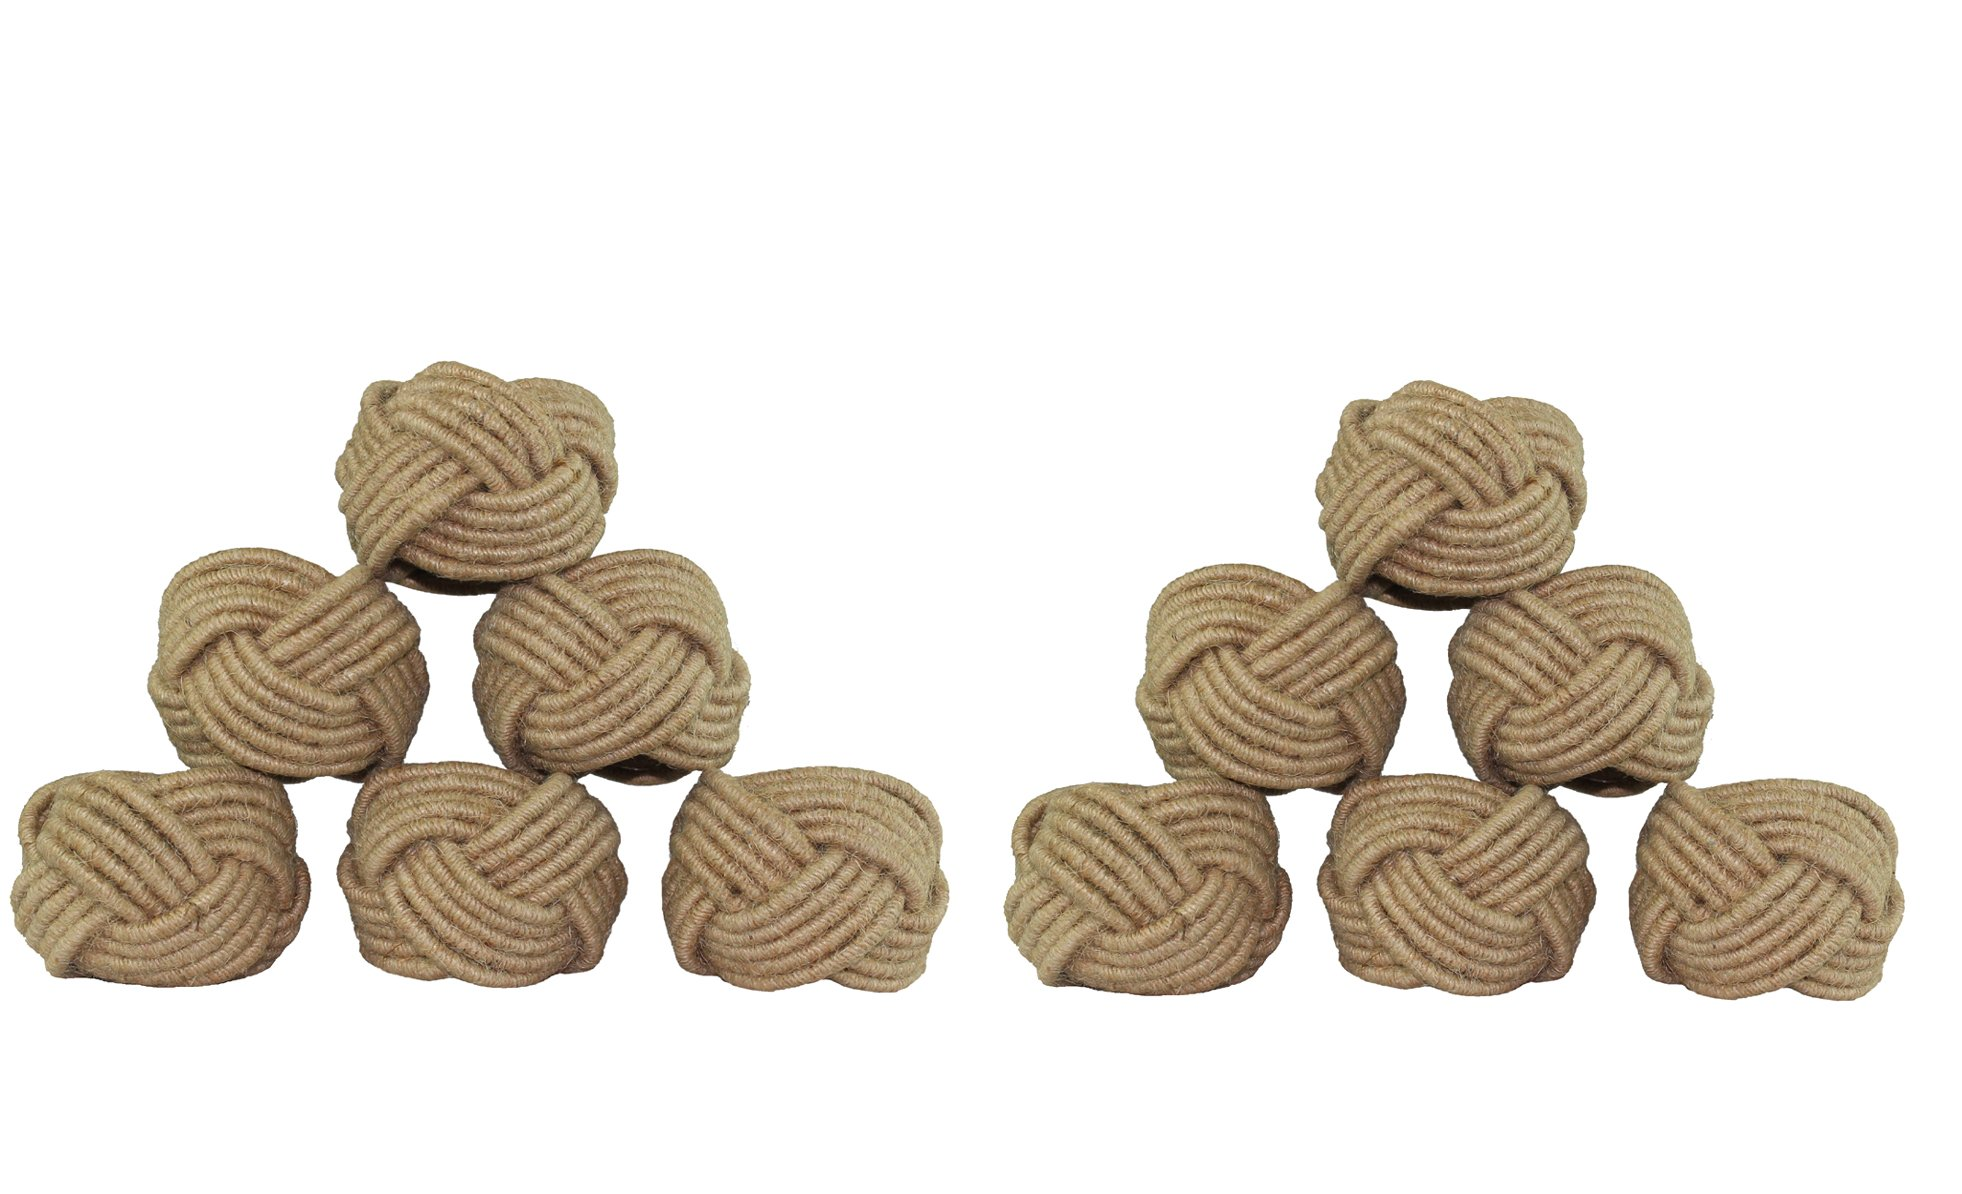 COTTON CRAFT - Jute Napkin Ring - Set of 12-2 Inch Round - Hand Made by Skilled artisans - A Beautiful complement to Your Dinner Table décor by COTTON CRAFT